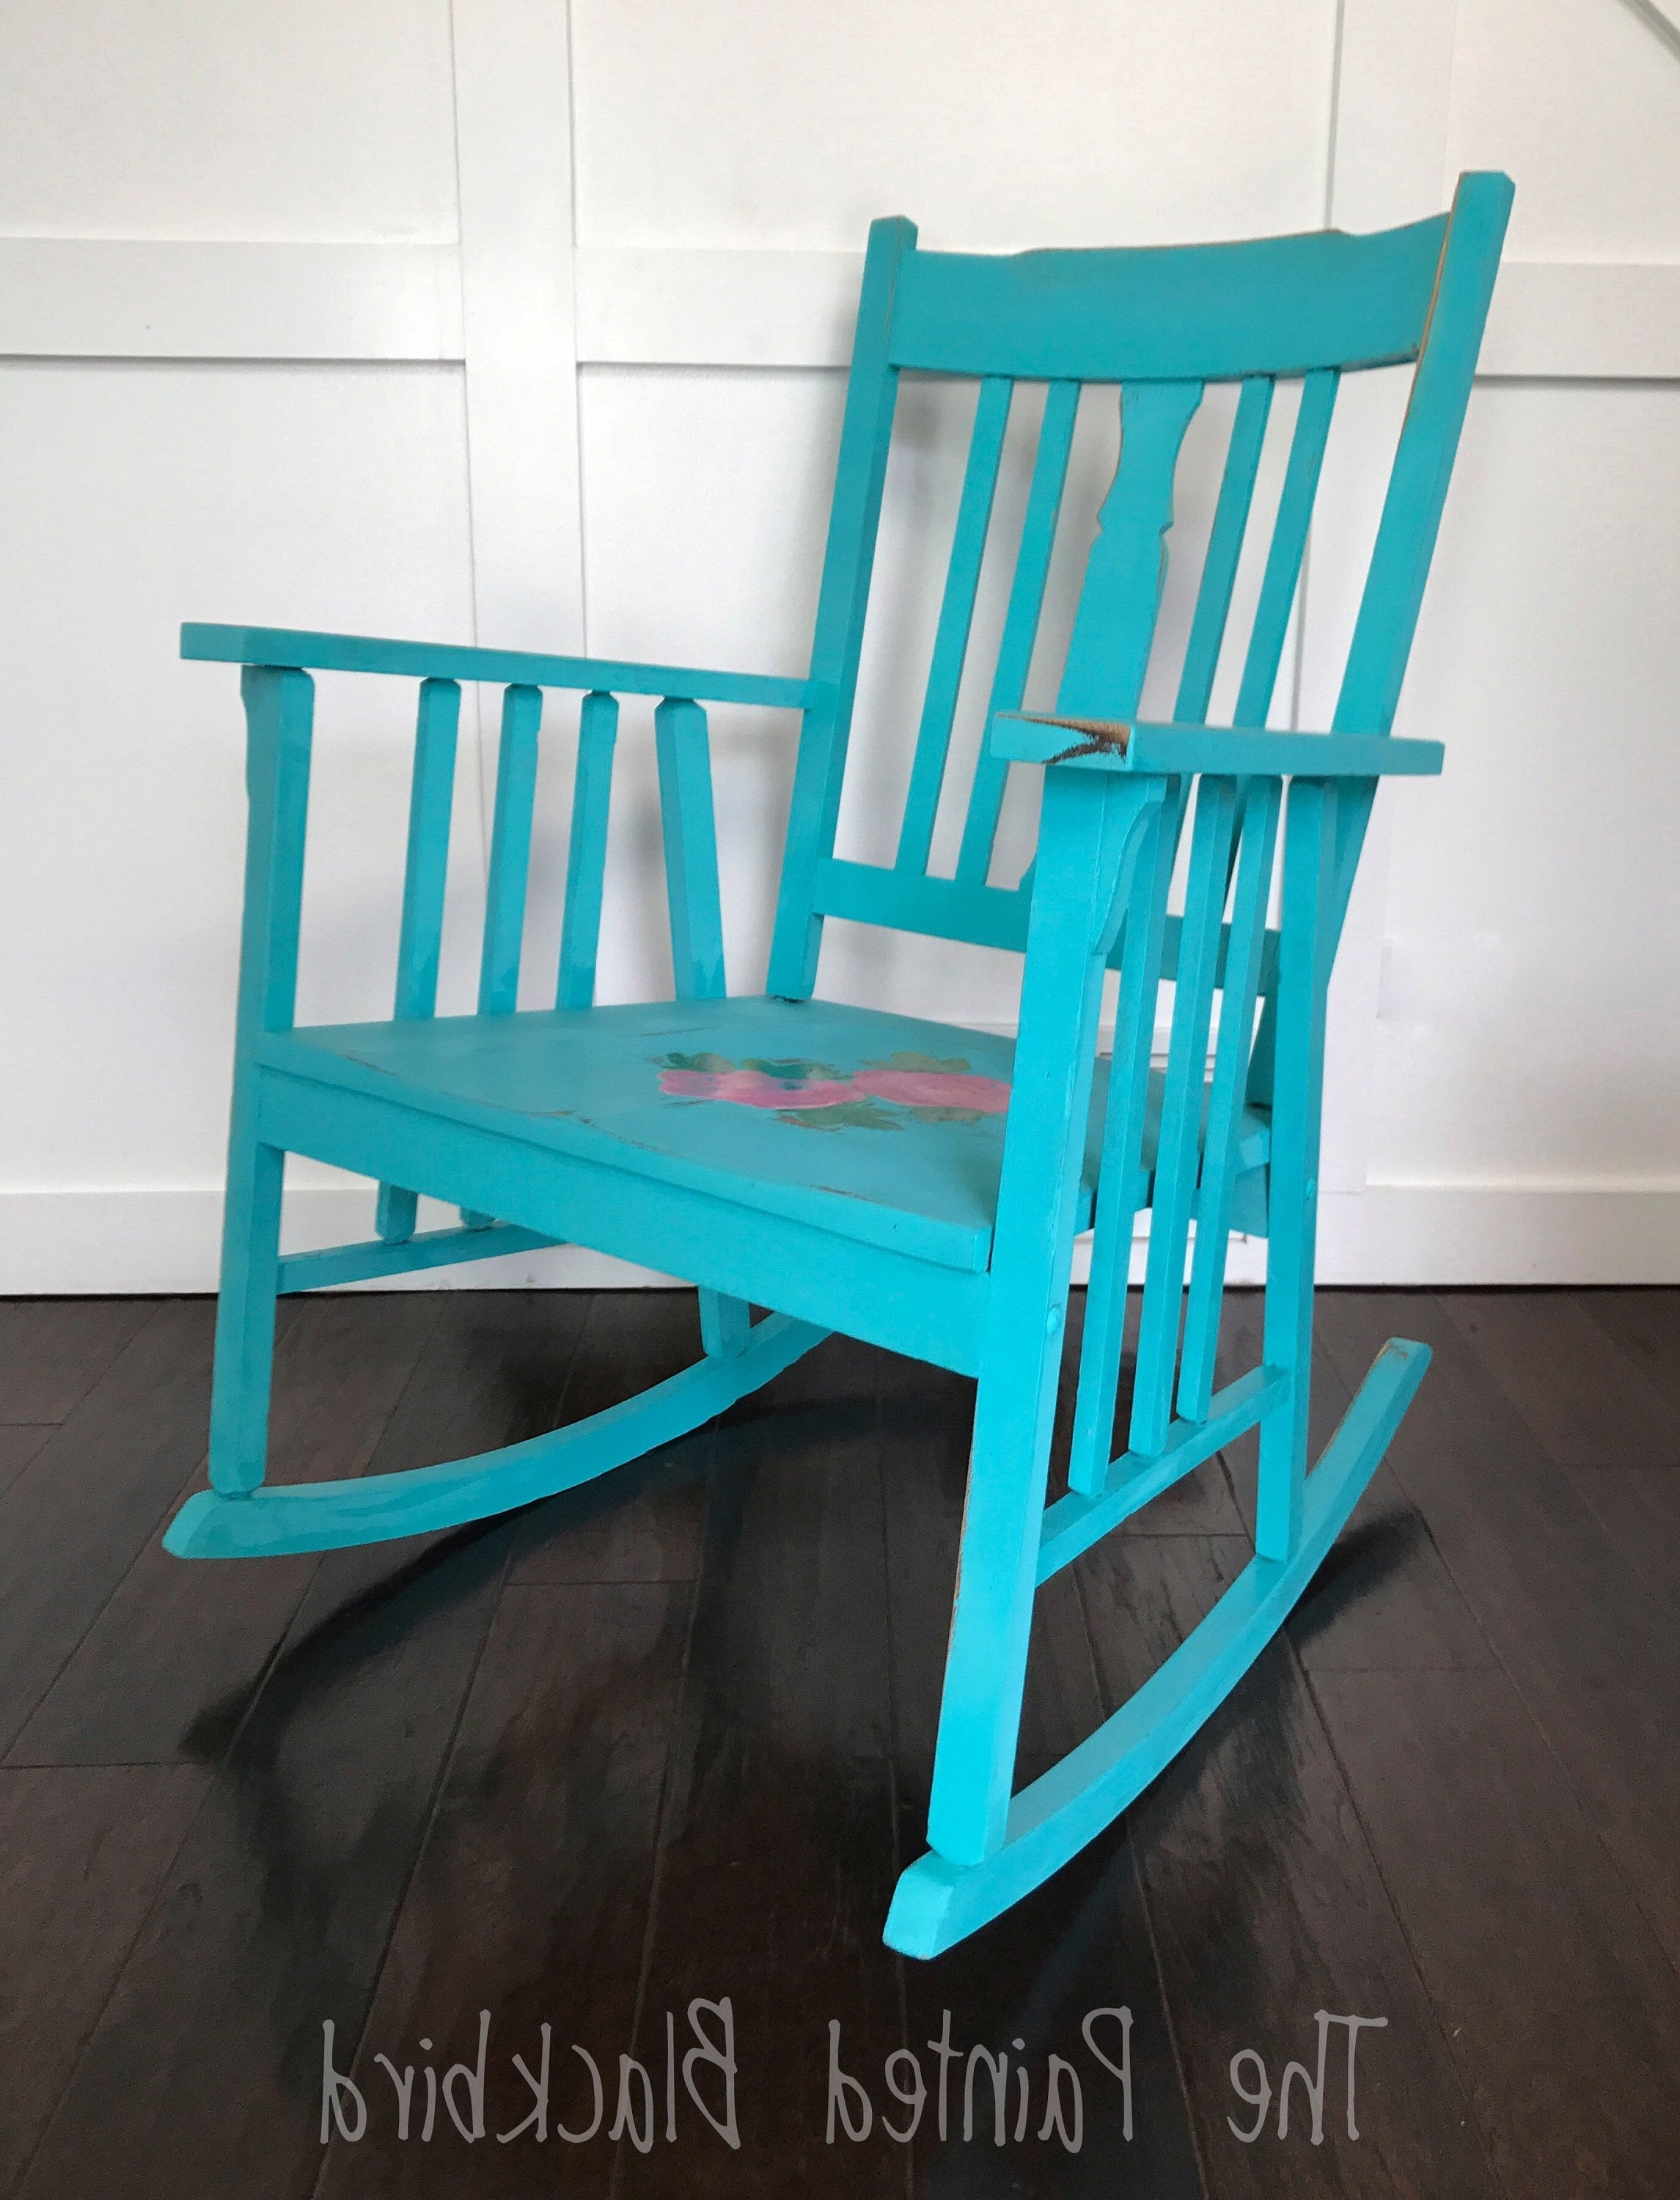 Wooden Rocking Chair, Shabby Chic, French Country, Roses, Turquoise Inside Current Rocking Chairs At Roses (View 11 of 20)